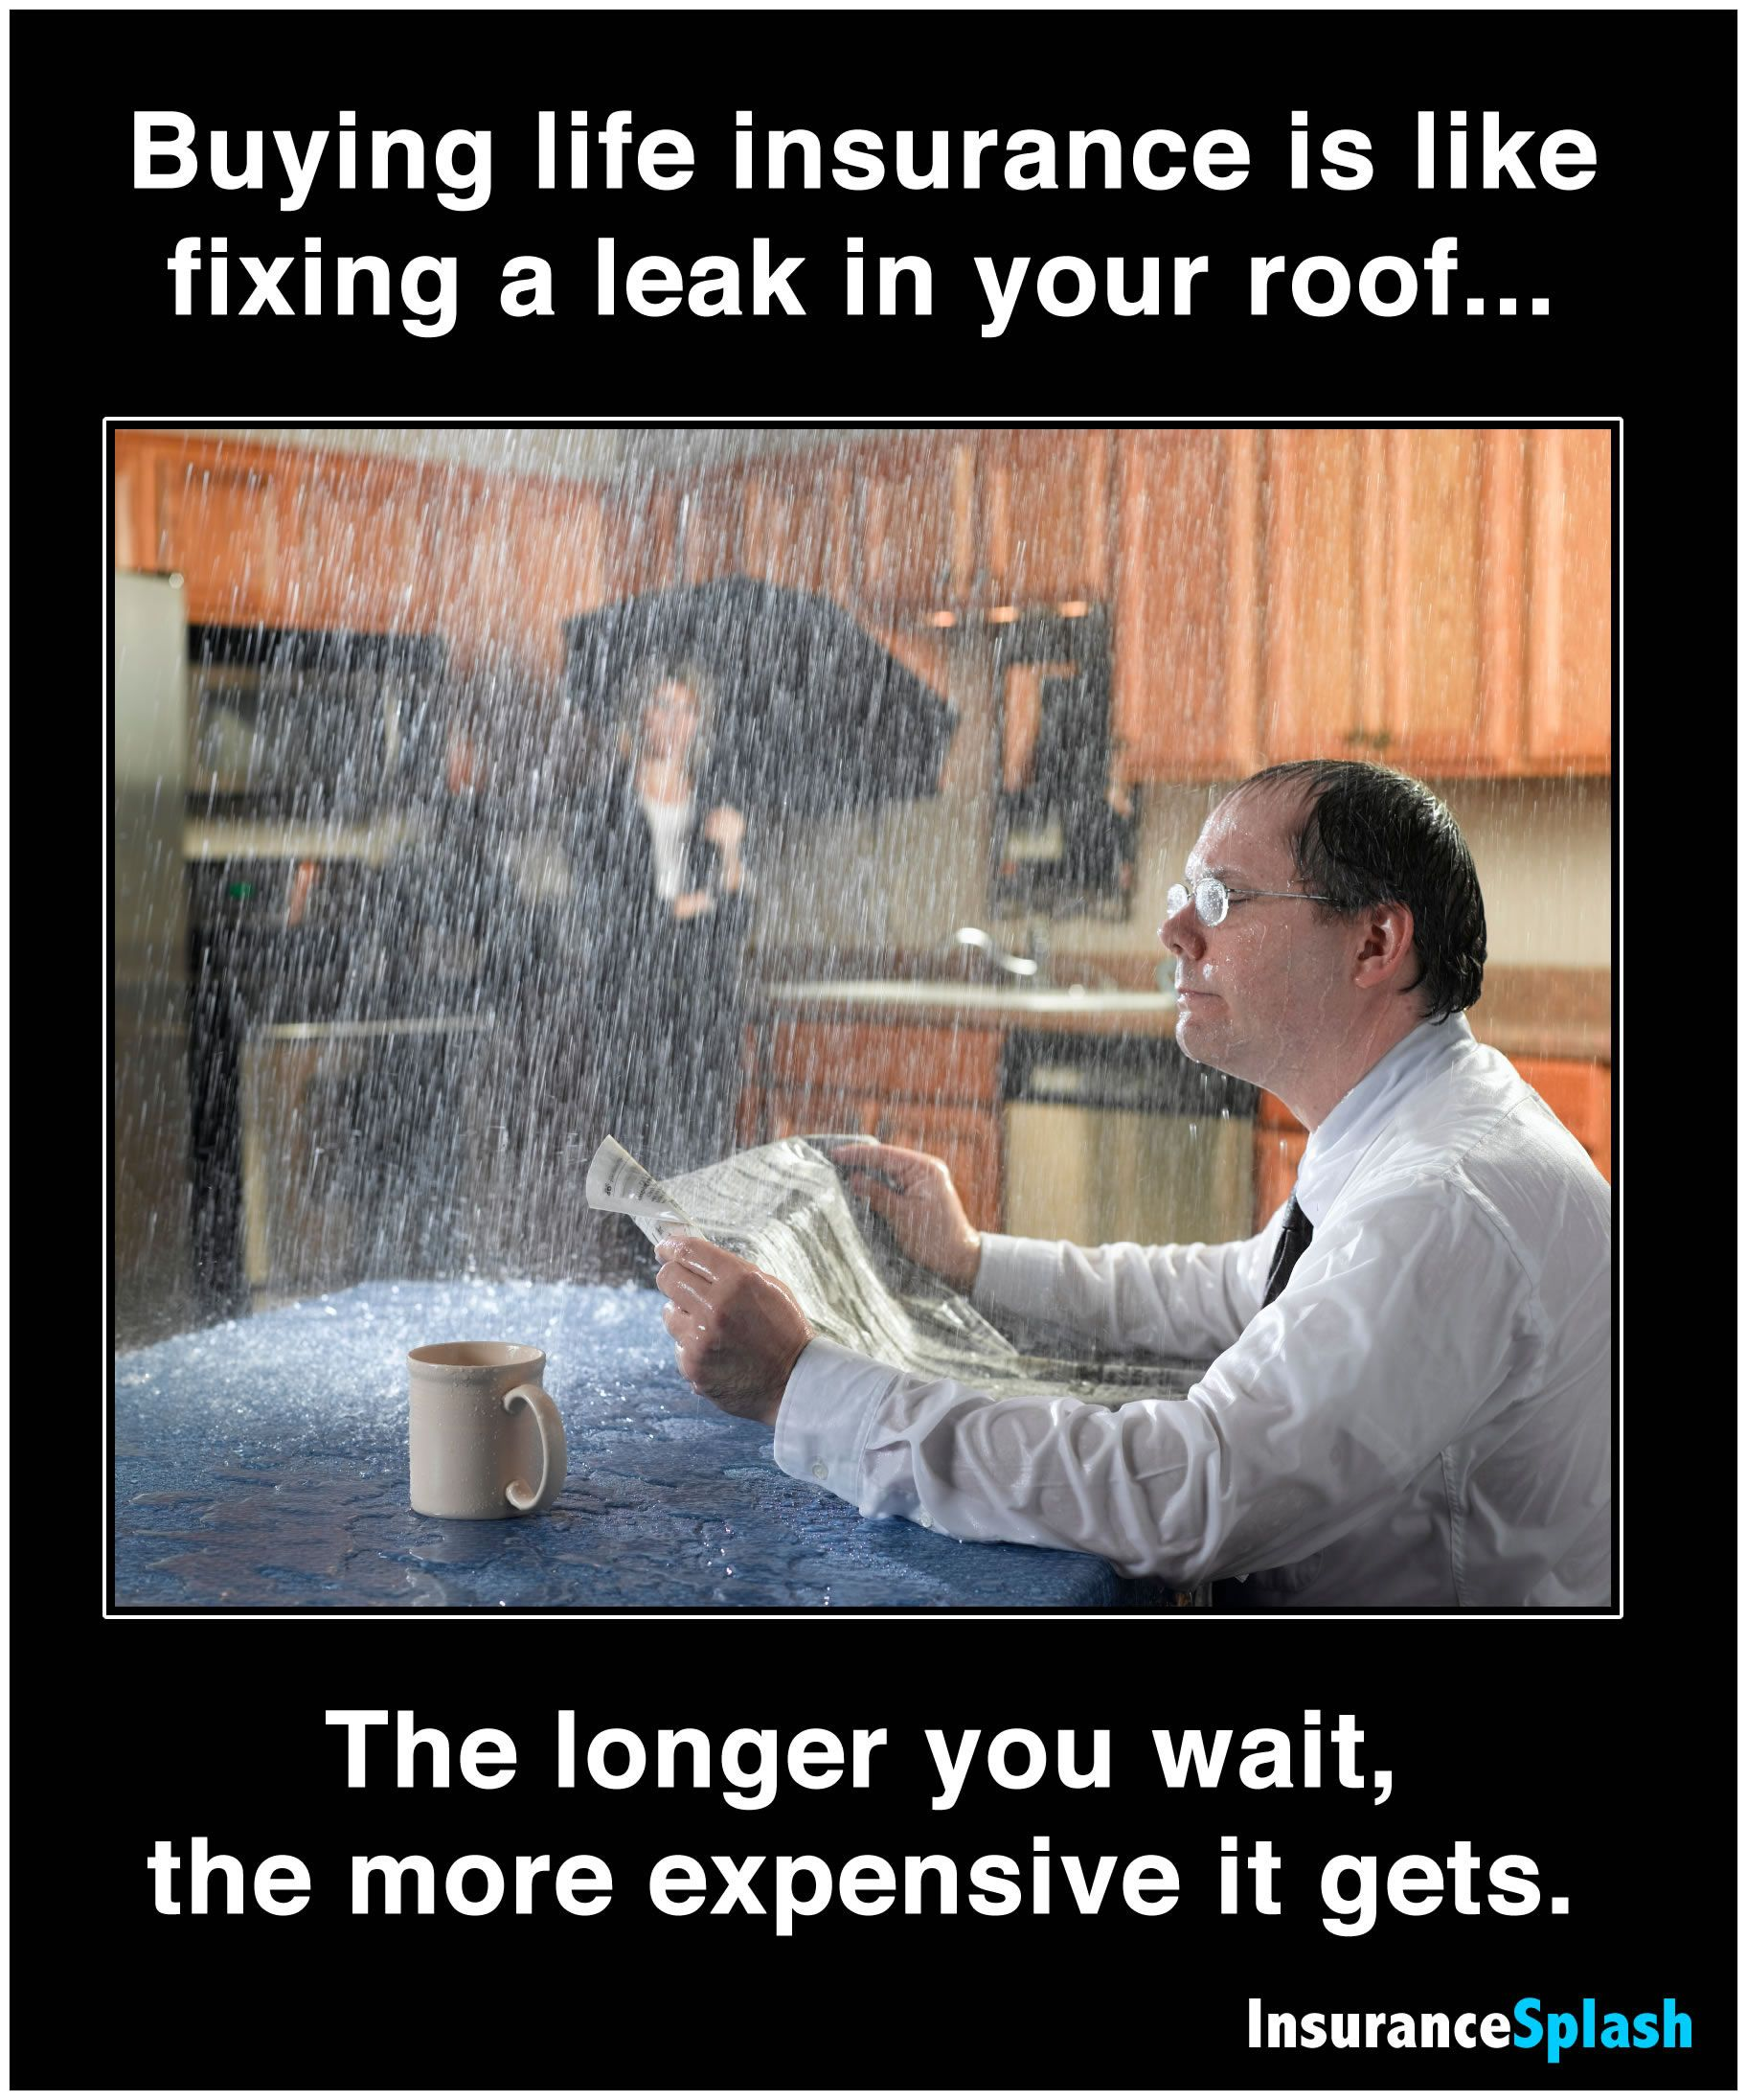 Term Life Insurance Quote Pleasing Buying Life Insurance Is Like Fixing A Leak In Your Roofthe . Decorating Inspiration